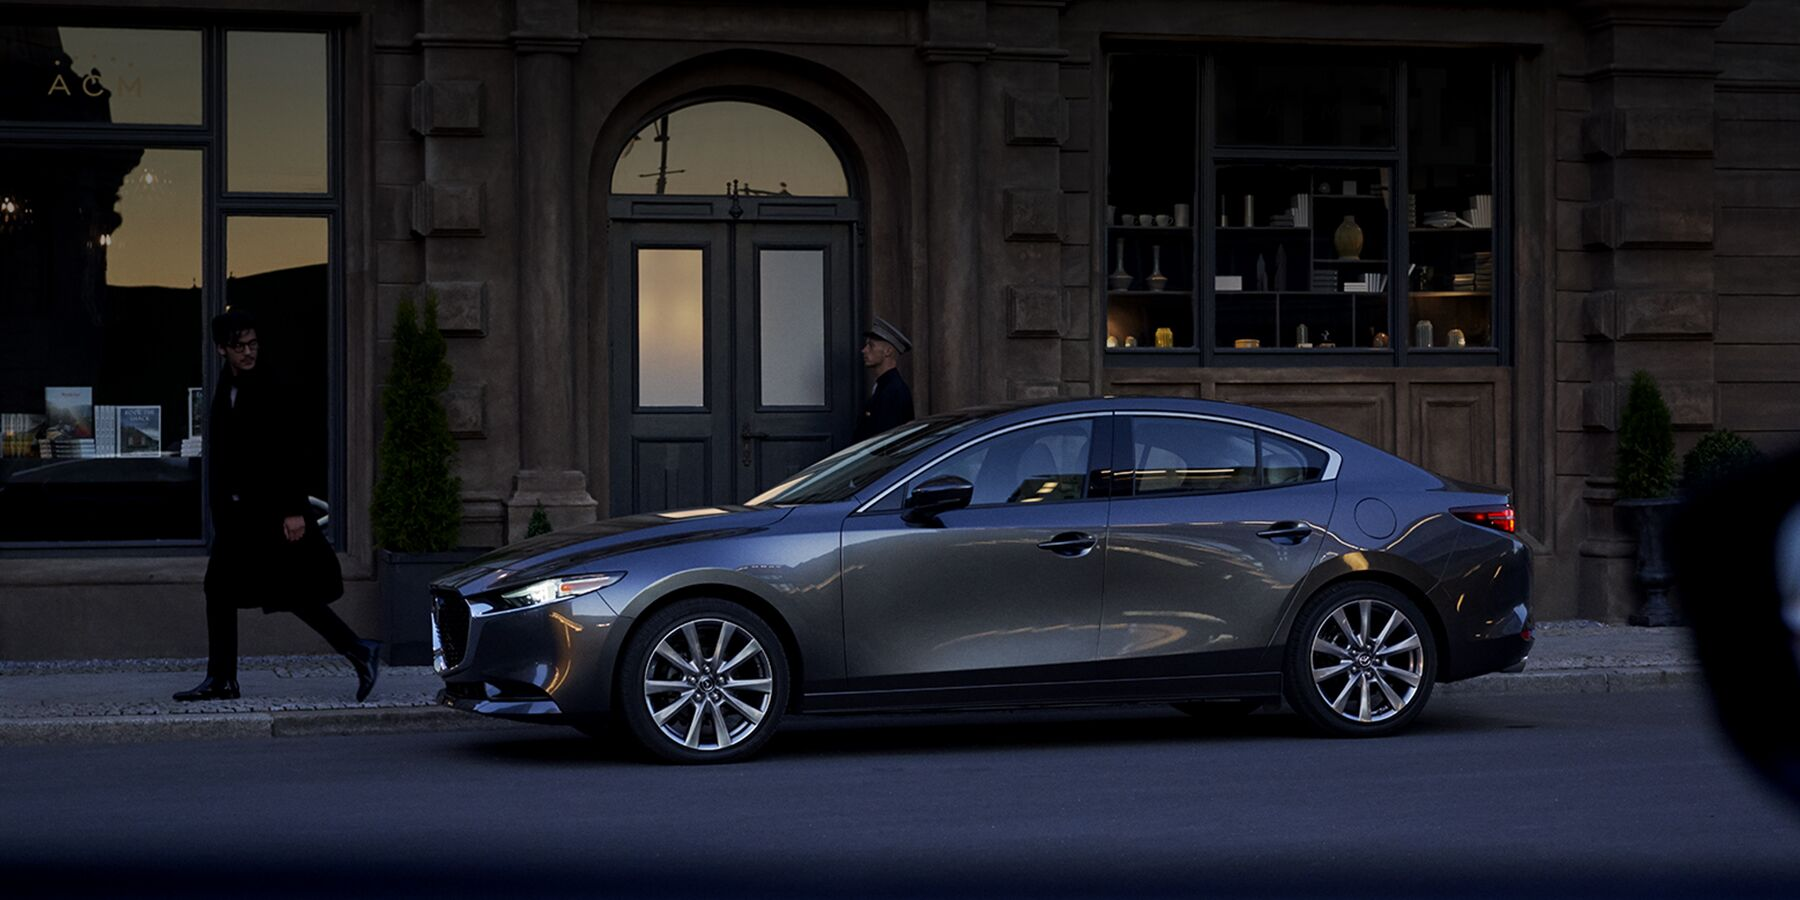 A 2019 Mazda3 sedan outside a house